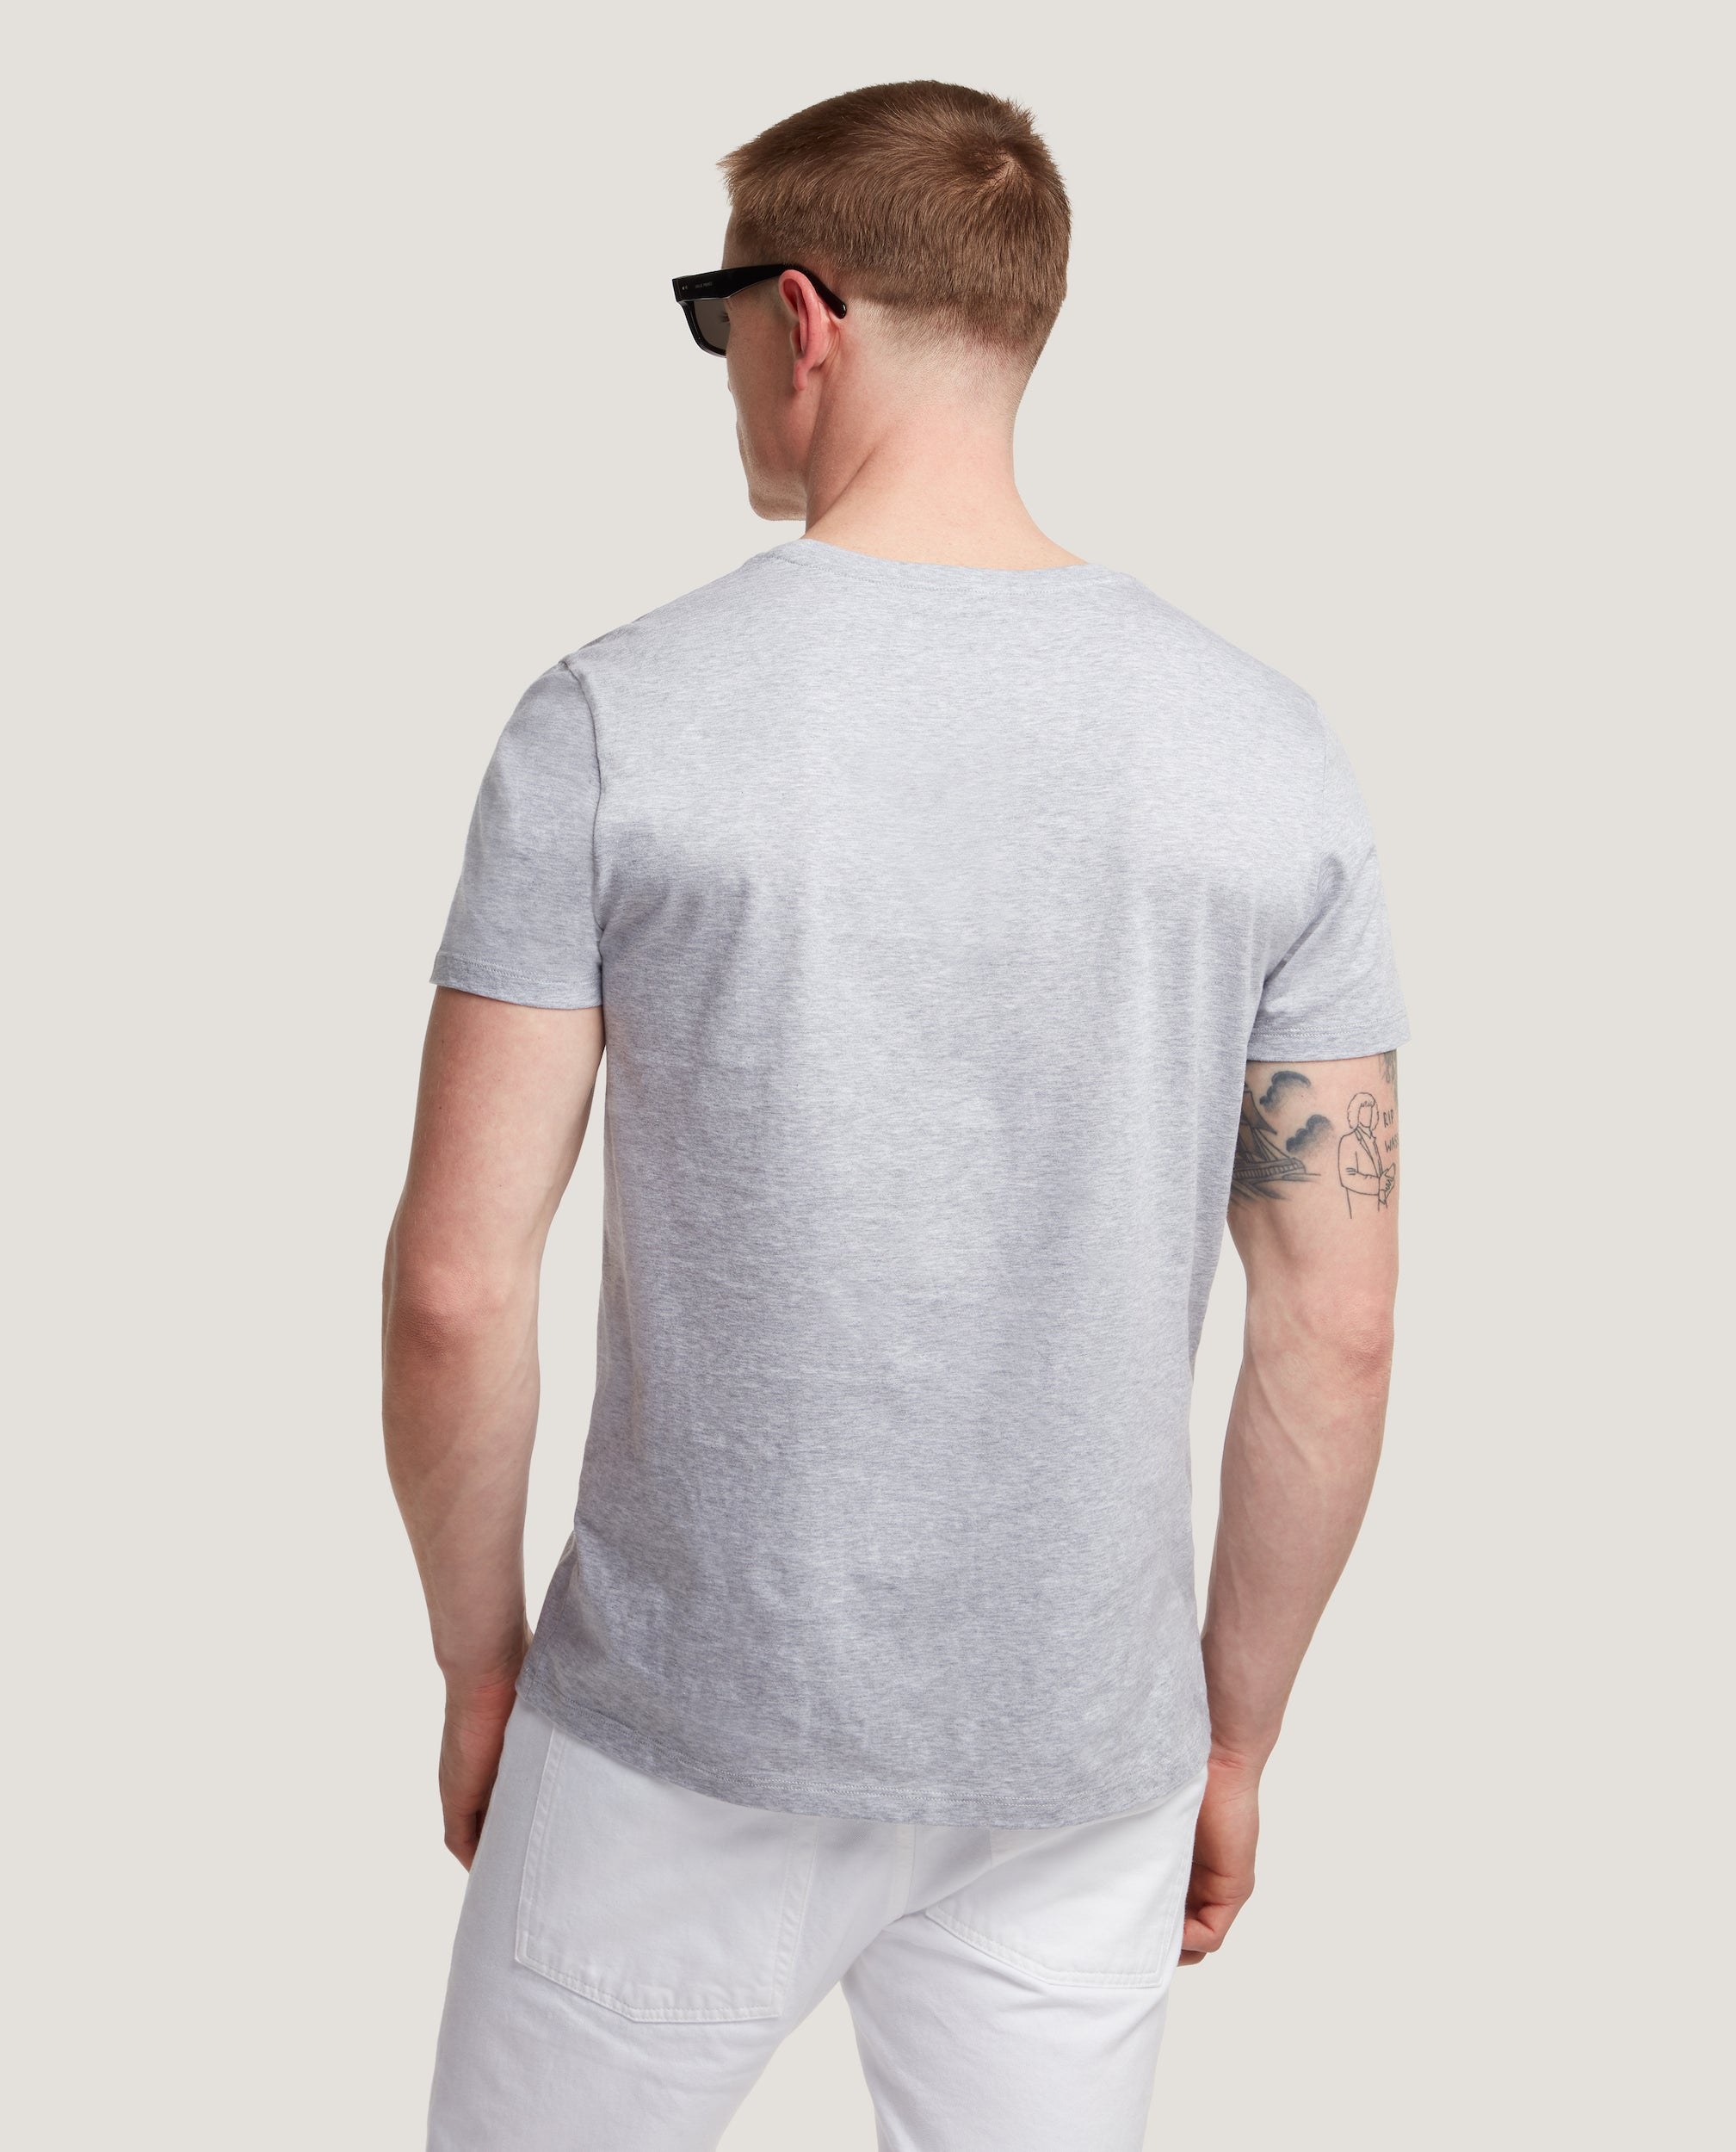 LOTHAR T-shirt | Cotton | Grey Melange